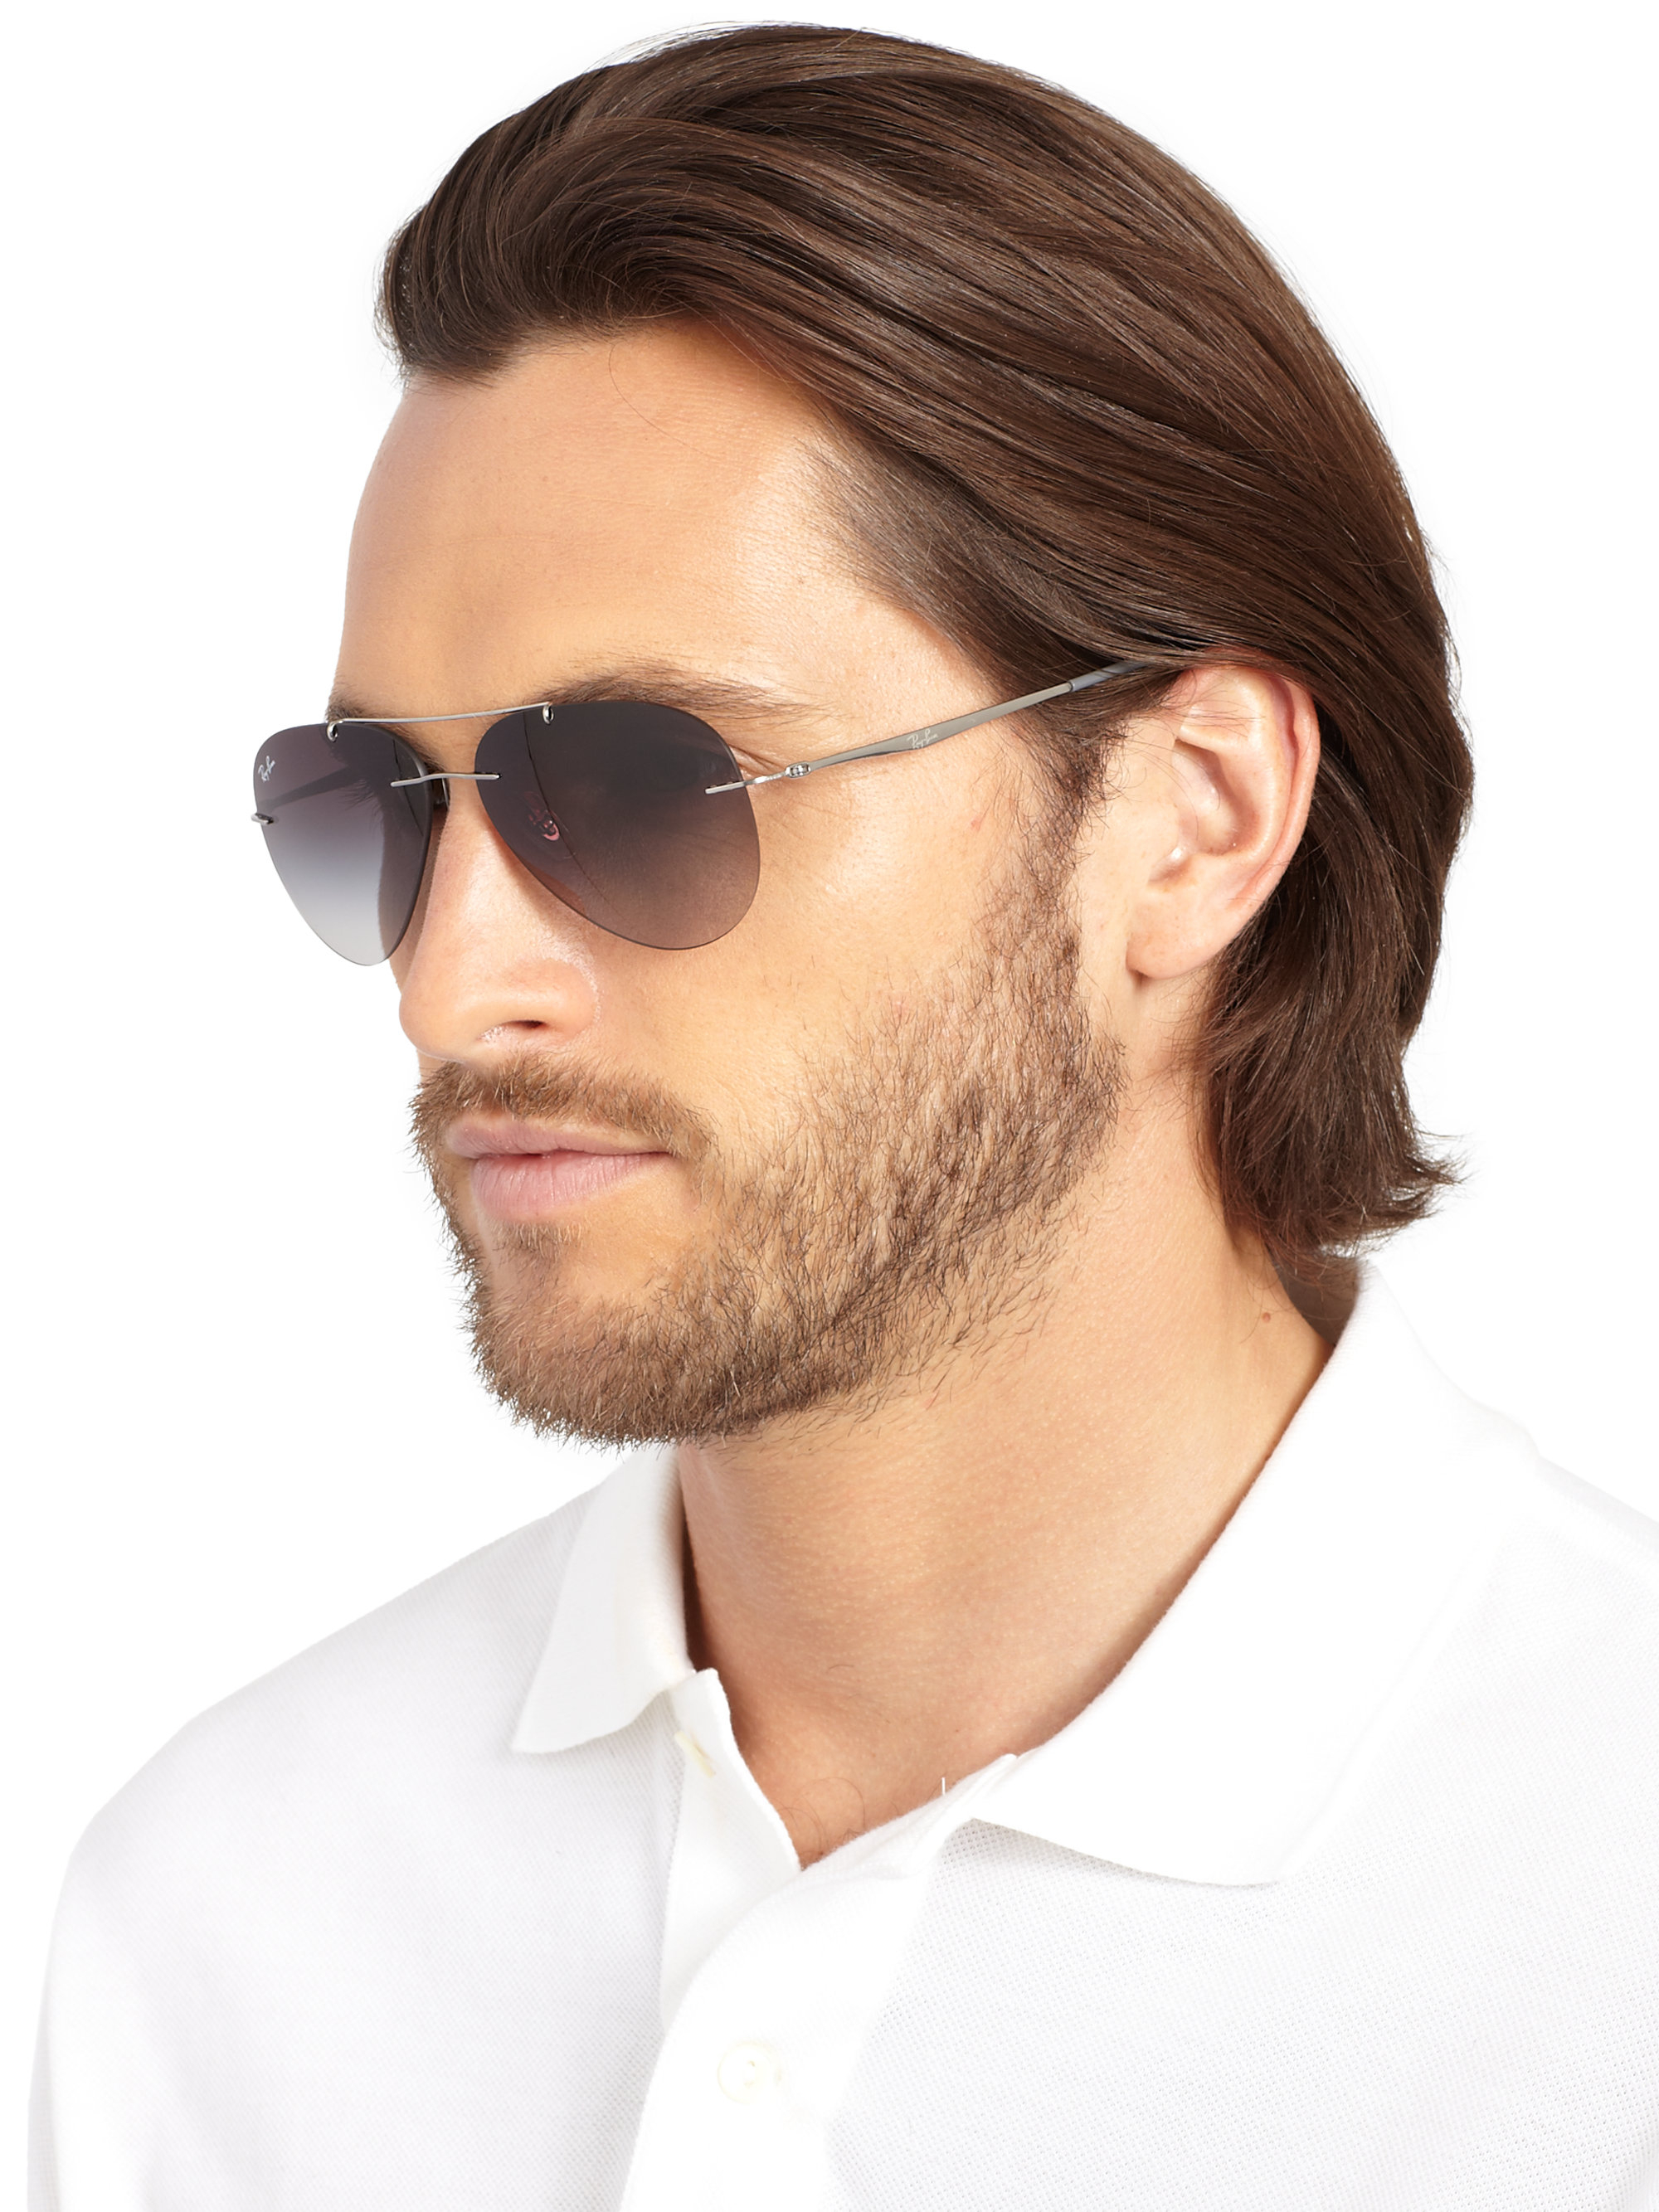 ray ban aviators mens  Ray Ban Aviators For Men - atlantabeadgallery